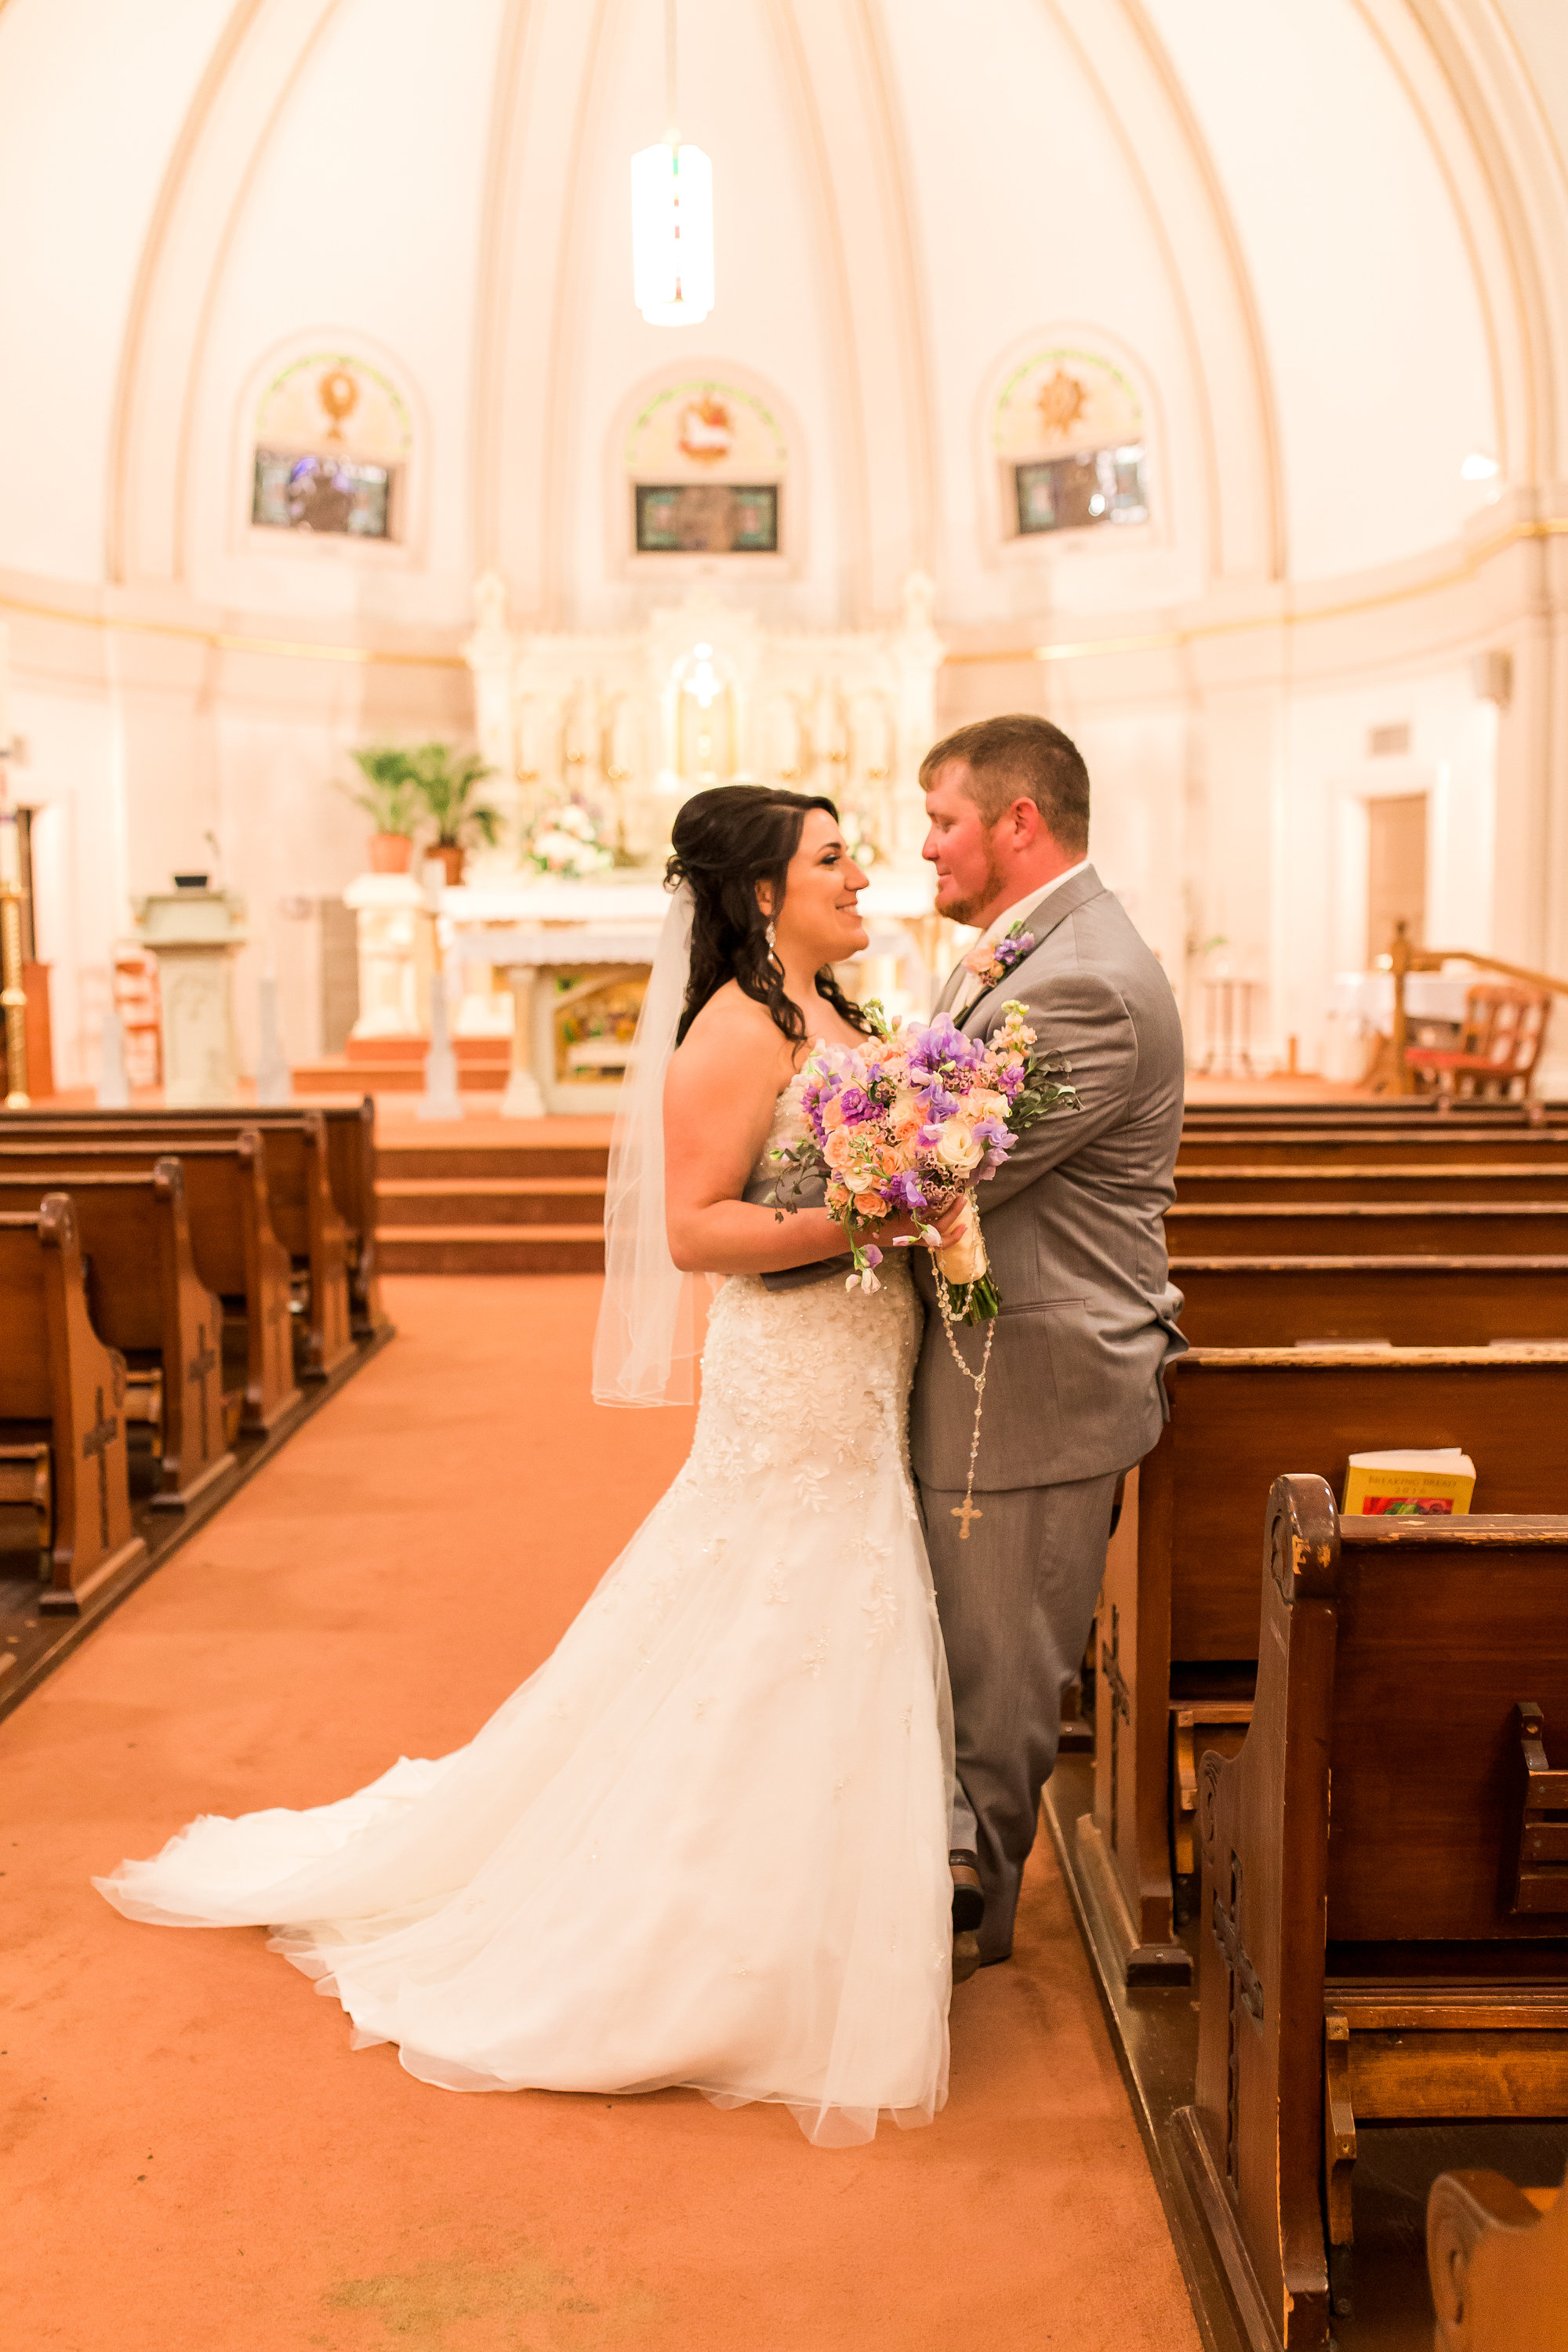 Adding a rosary to the bride's bouquet is a tradition among Catholic brides in Louisiana. We can also add a bit of lace from the bride's dress, a strand of pearls or memory photos to the bridal bouquet.   Photo by Kaylie Nicole Photography